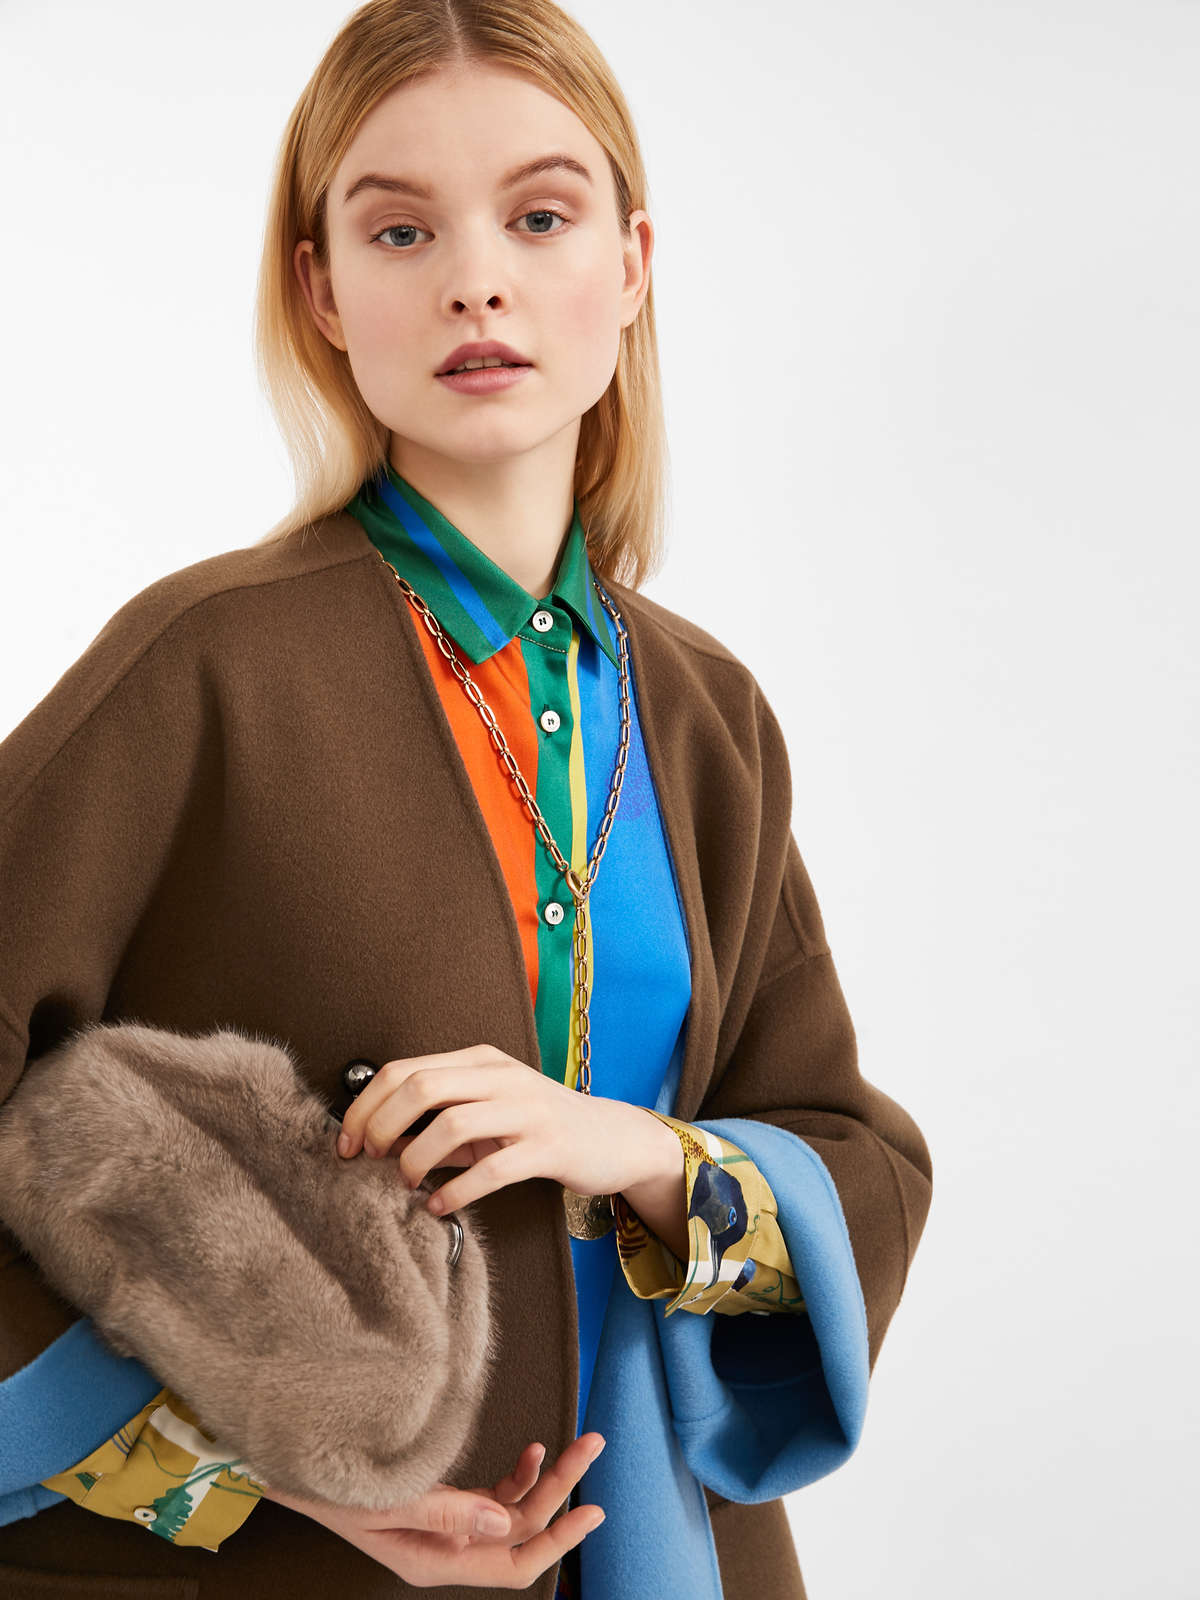 rivenditore online 1760b 14417 Weekend Max Mara 2019 Collection | Online Store | Max Mara